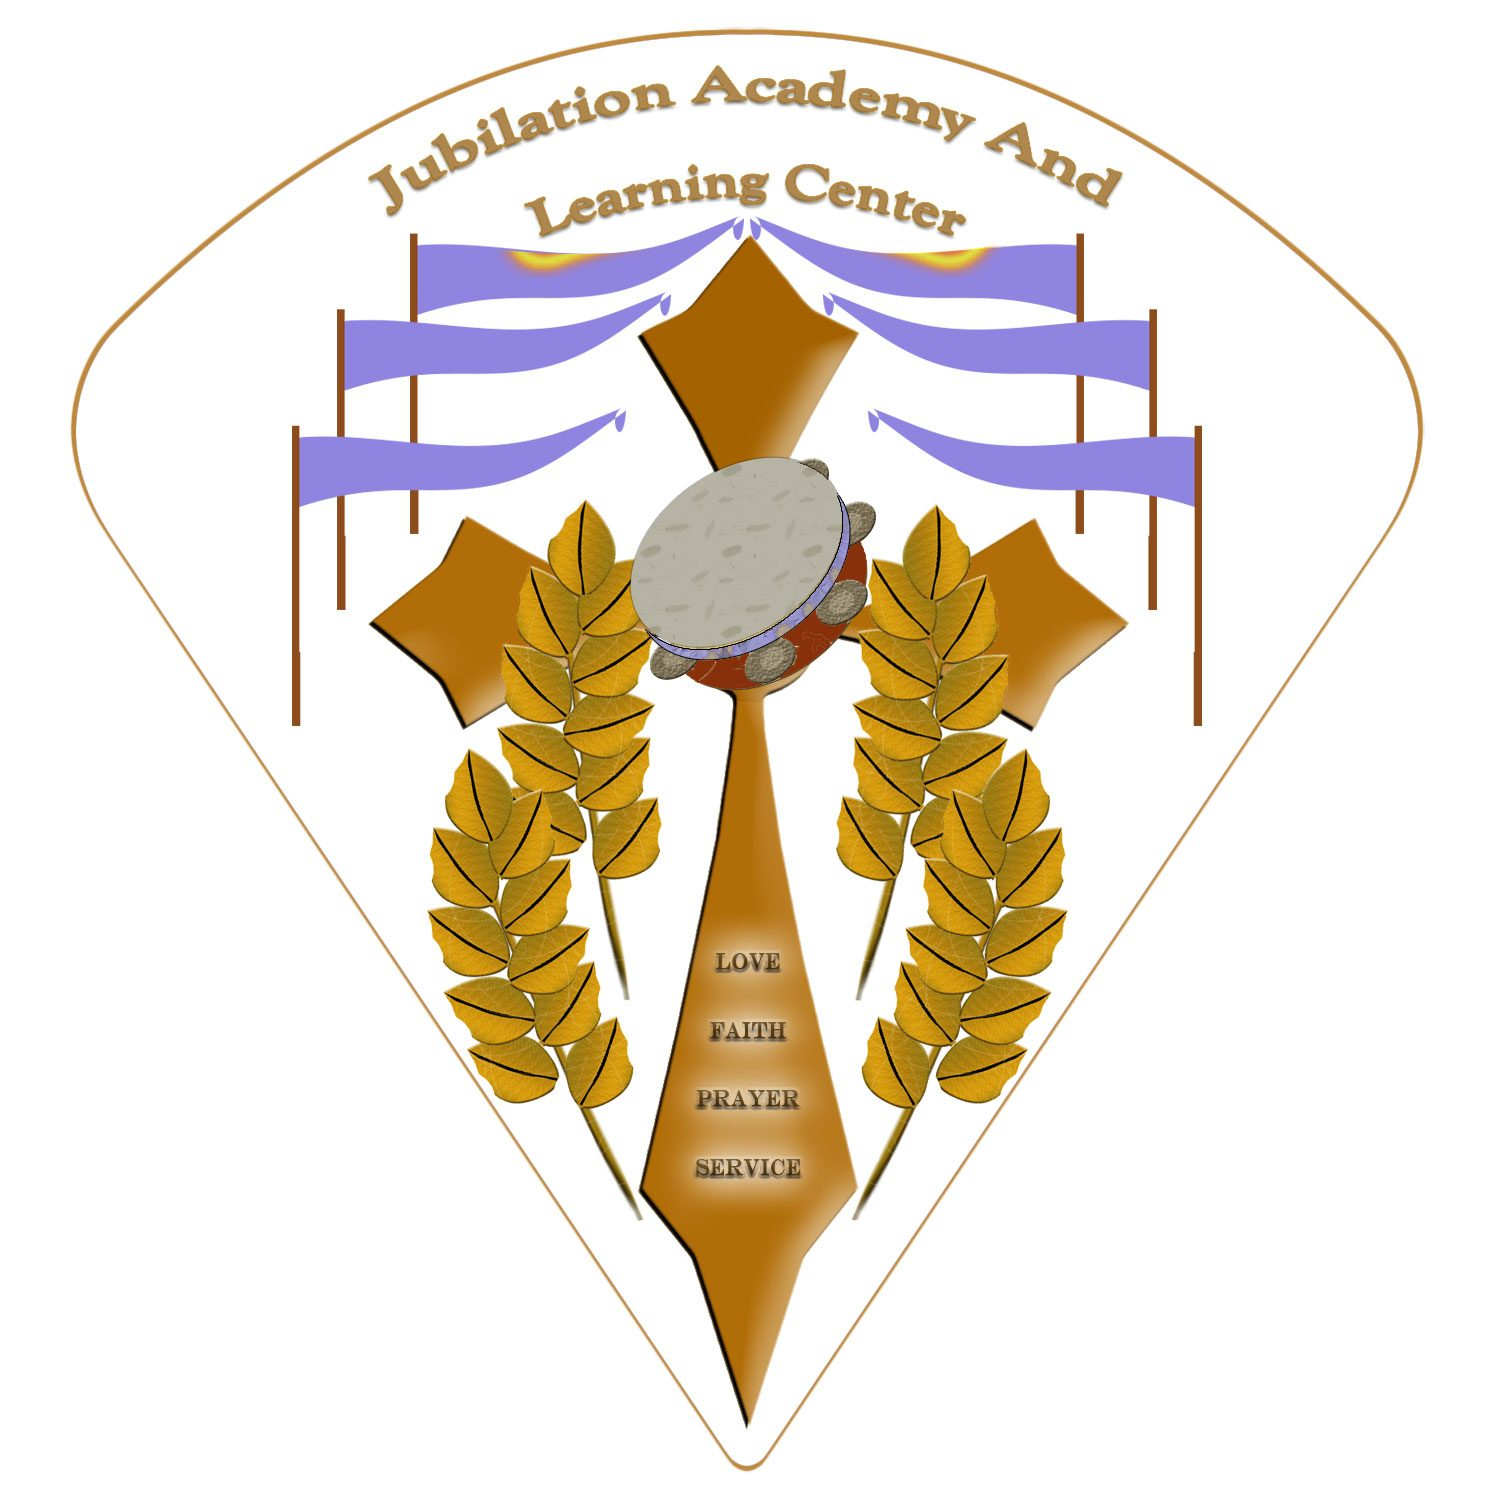 Jubilation Academy and Learning Center